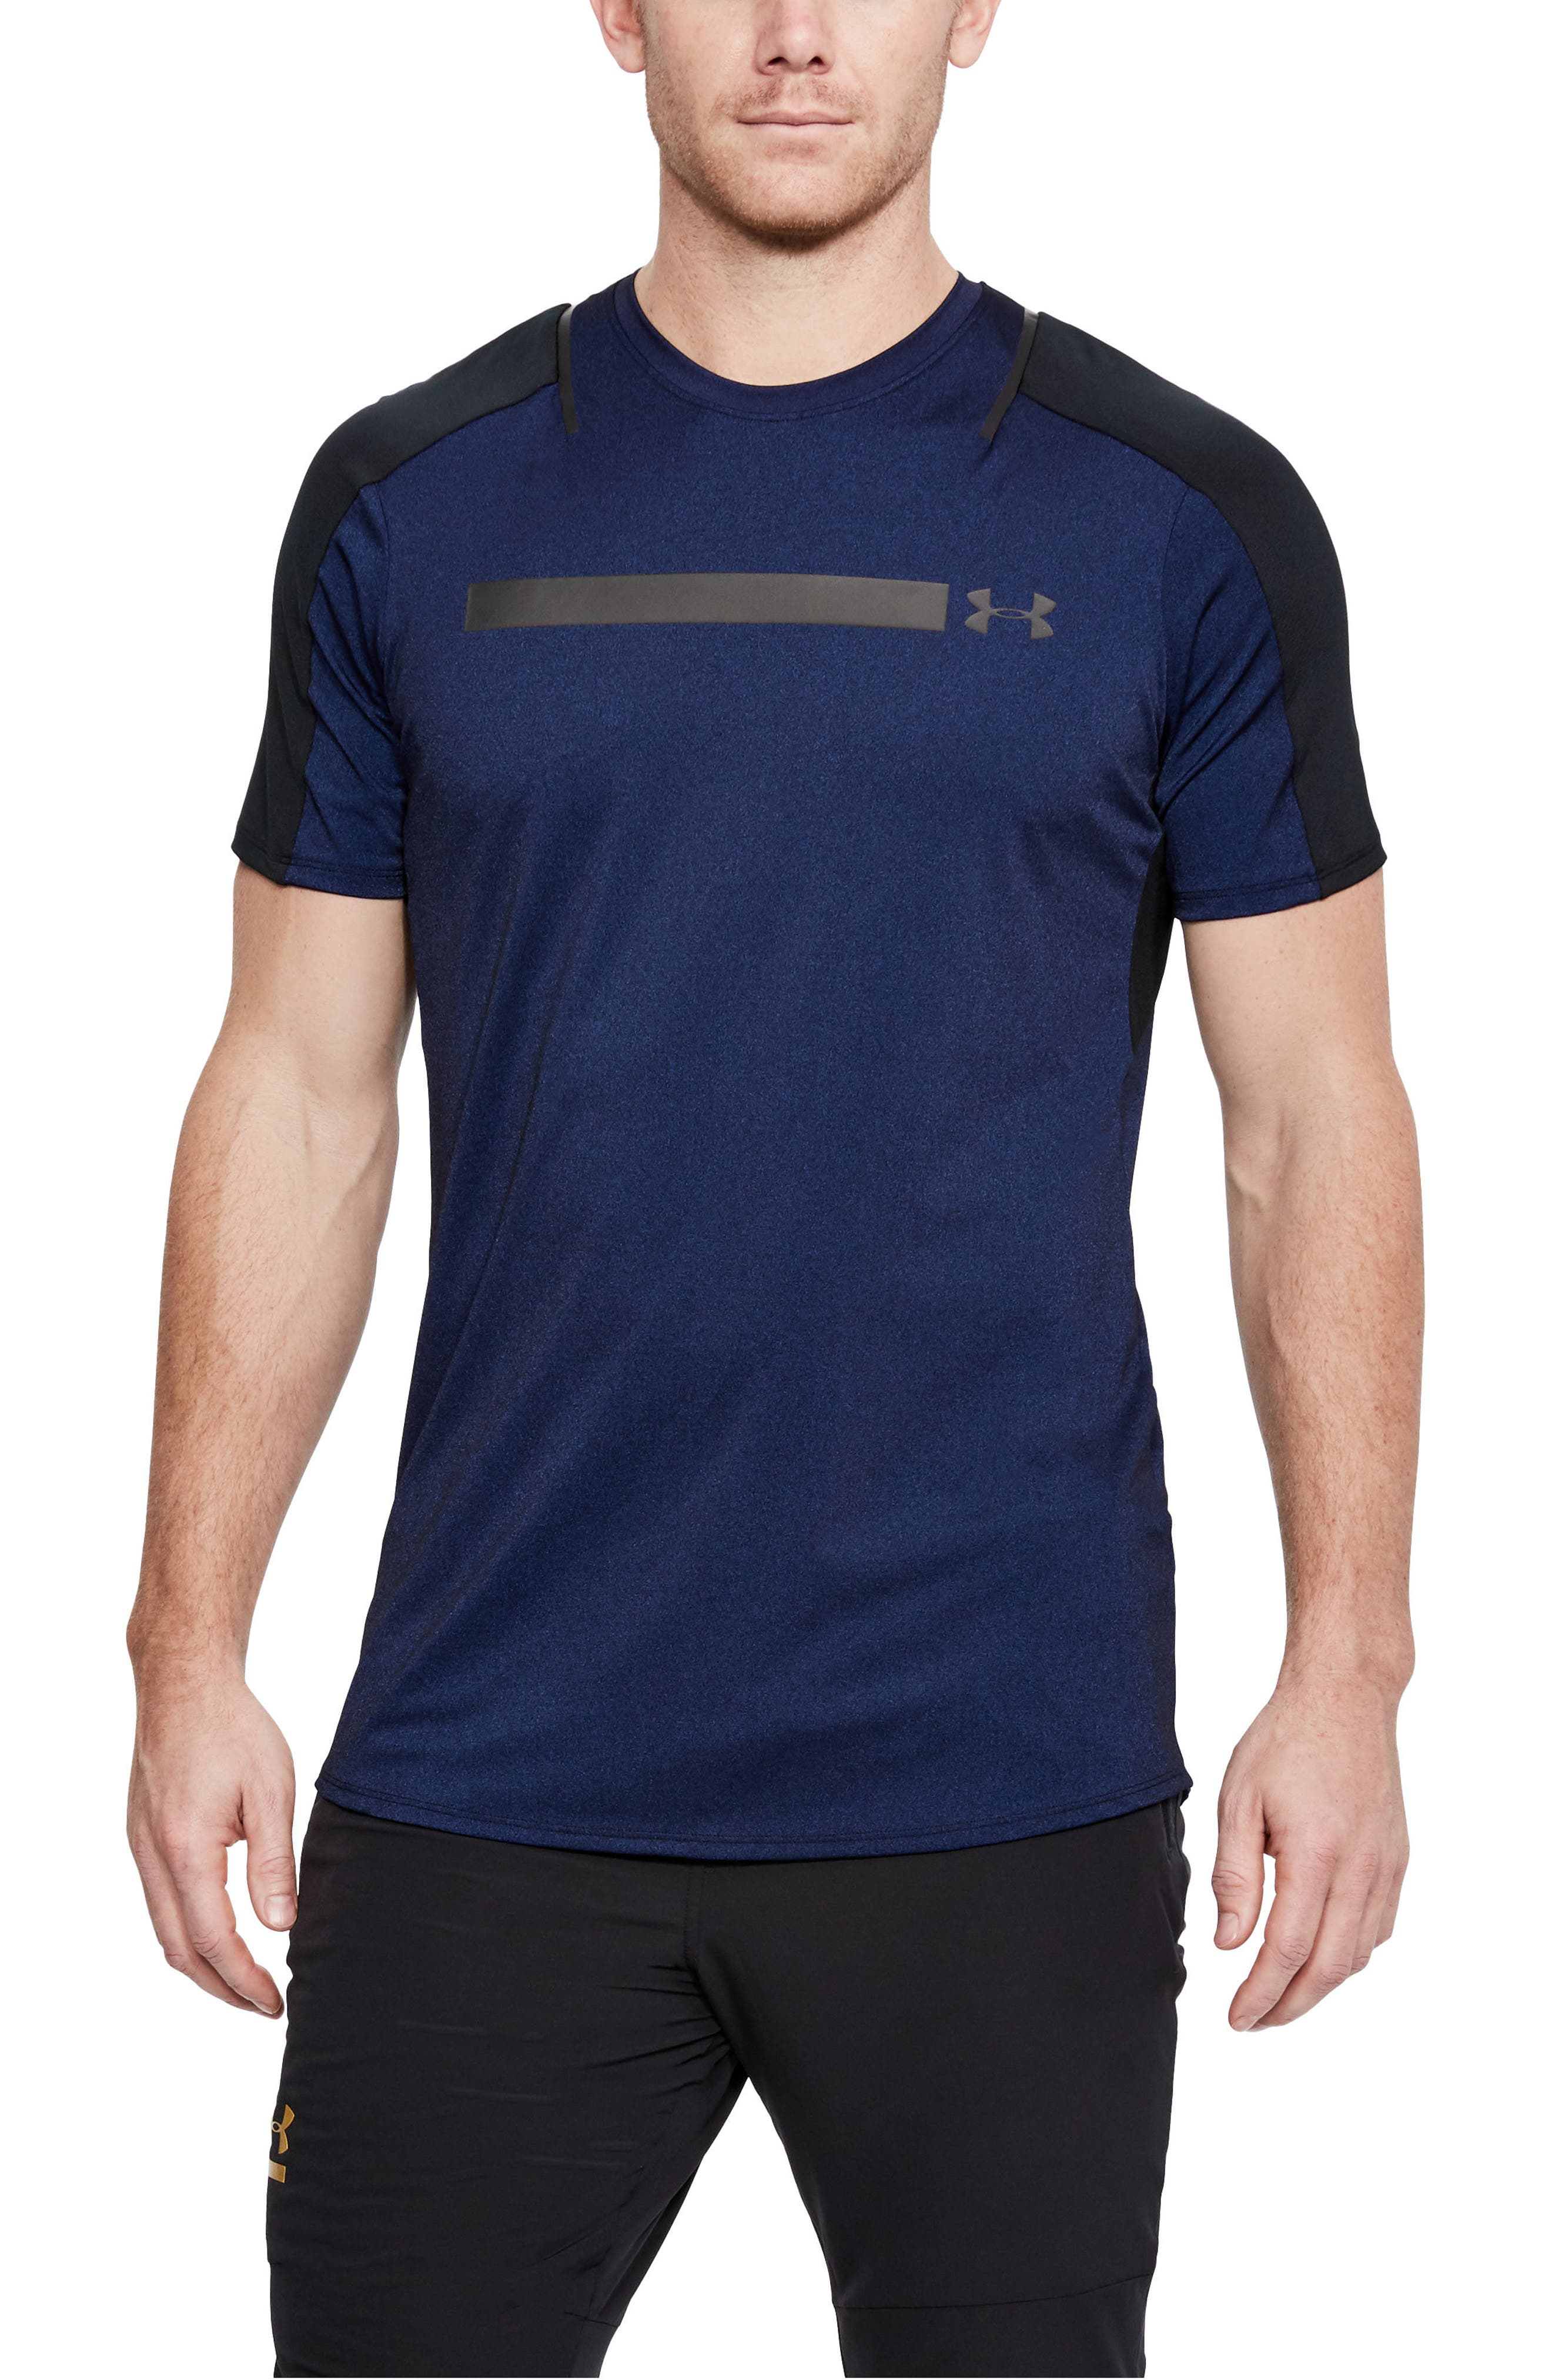 Perpetual Fitted Shirt,                             Main thumbnail 1, color,                             FORMATION BLUE/ BLACK